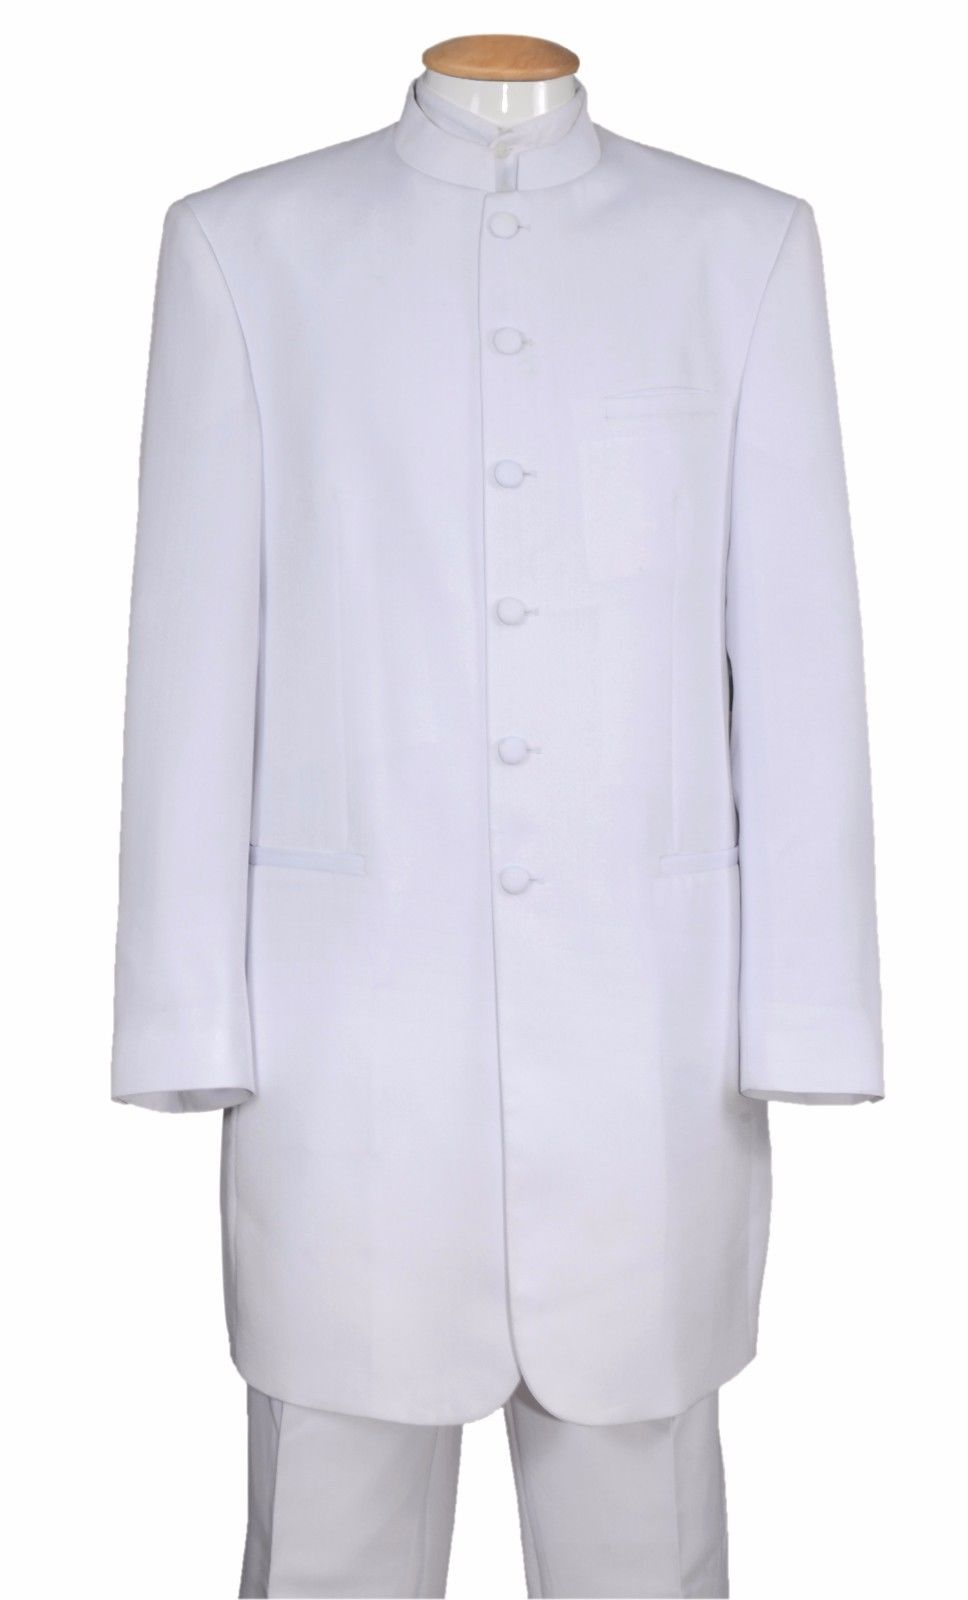 Fortino Landi Suit 6905H-White - Church Suits For Less